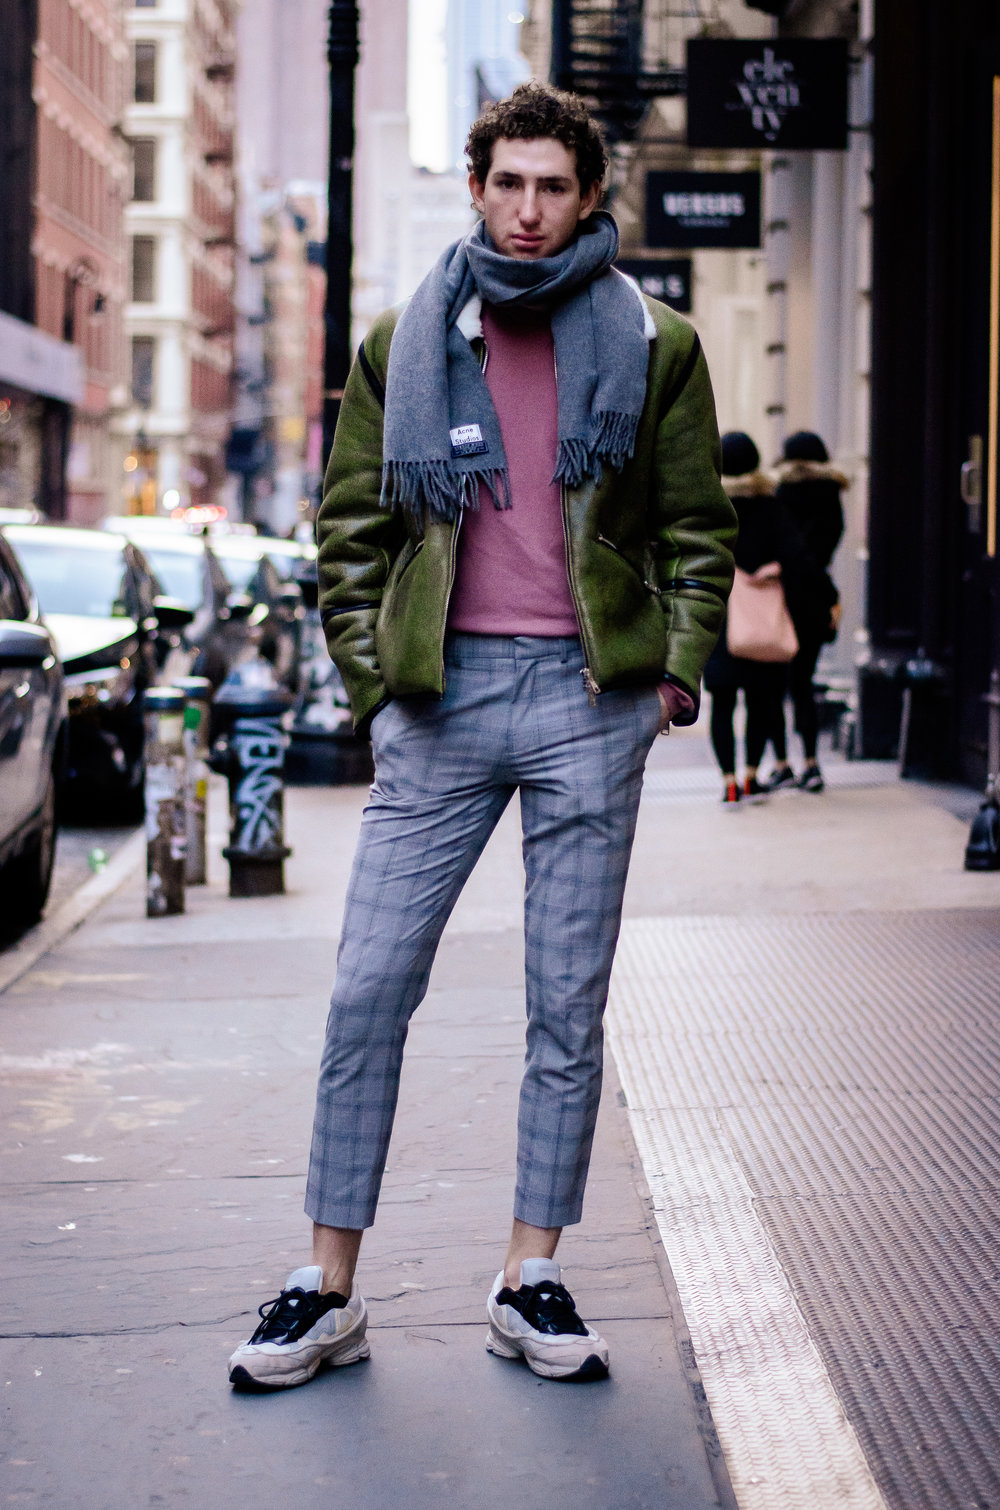 Deep nostalgia for temperate days: His winter outfit features warm-coloured pieces such as his green shearling jacket, and blush-red sweatshirt. Also, given the frigid temperatures, he bravely ditched the socks. The resulting combination of ankle exposure, plaid pants, and Raf Simons sneakers is a style move worth stealing.